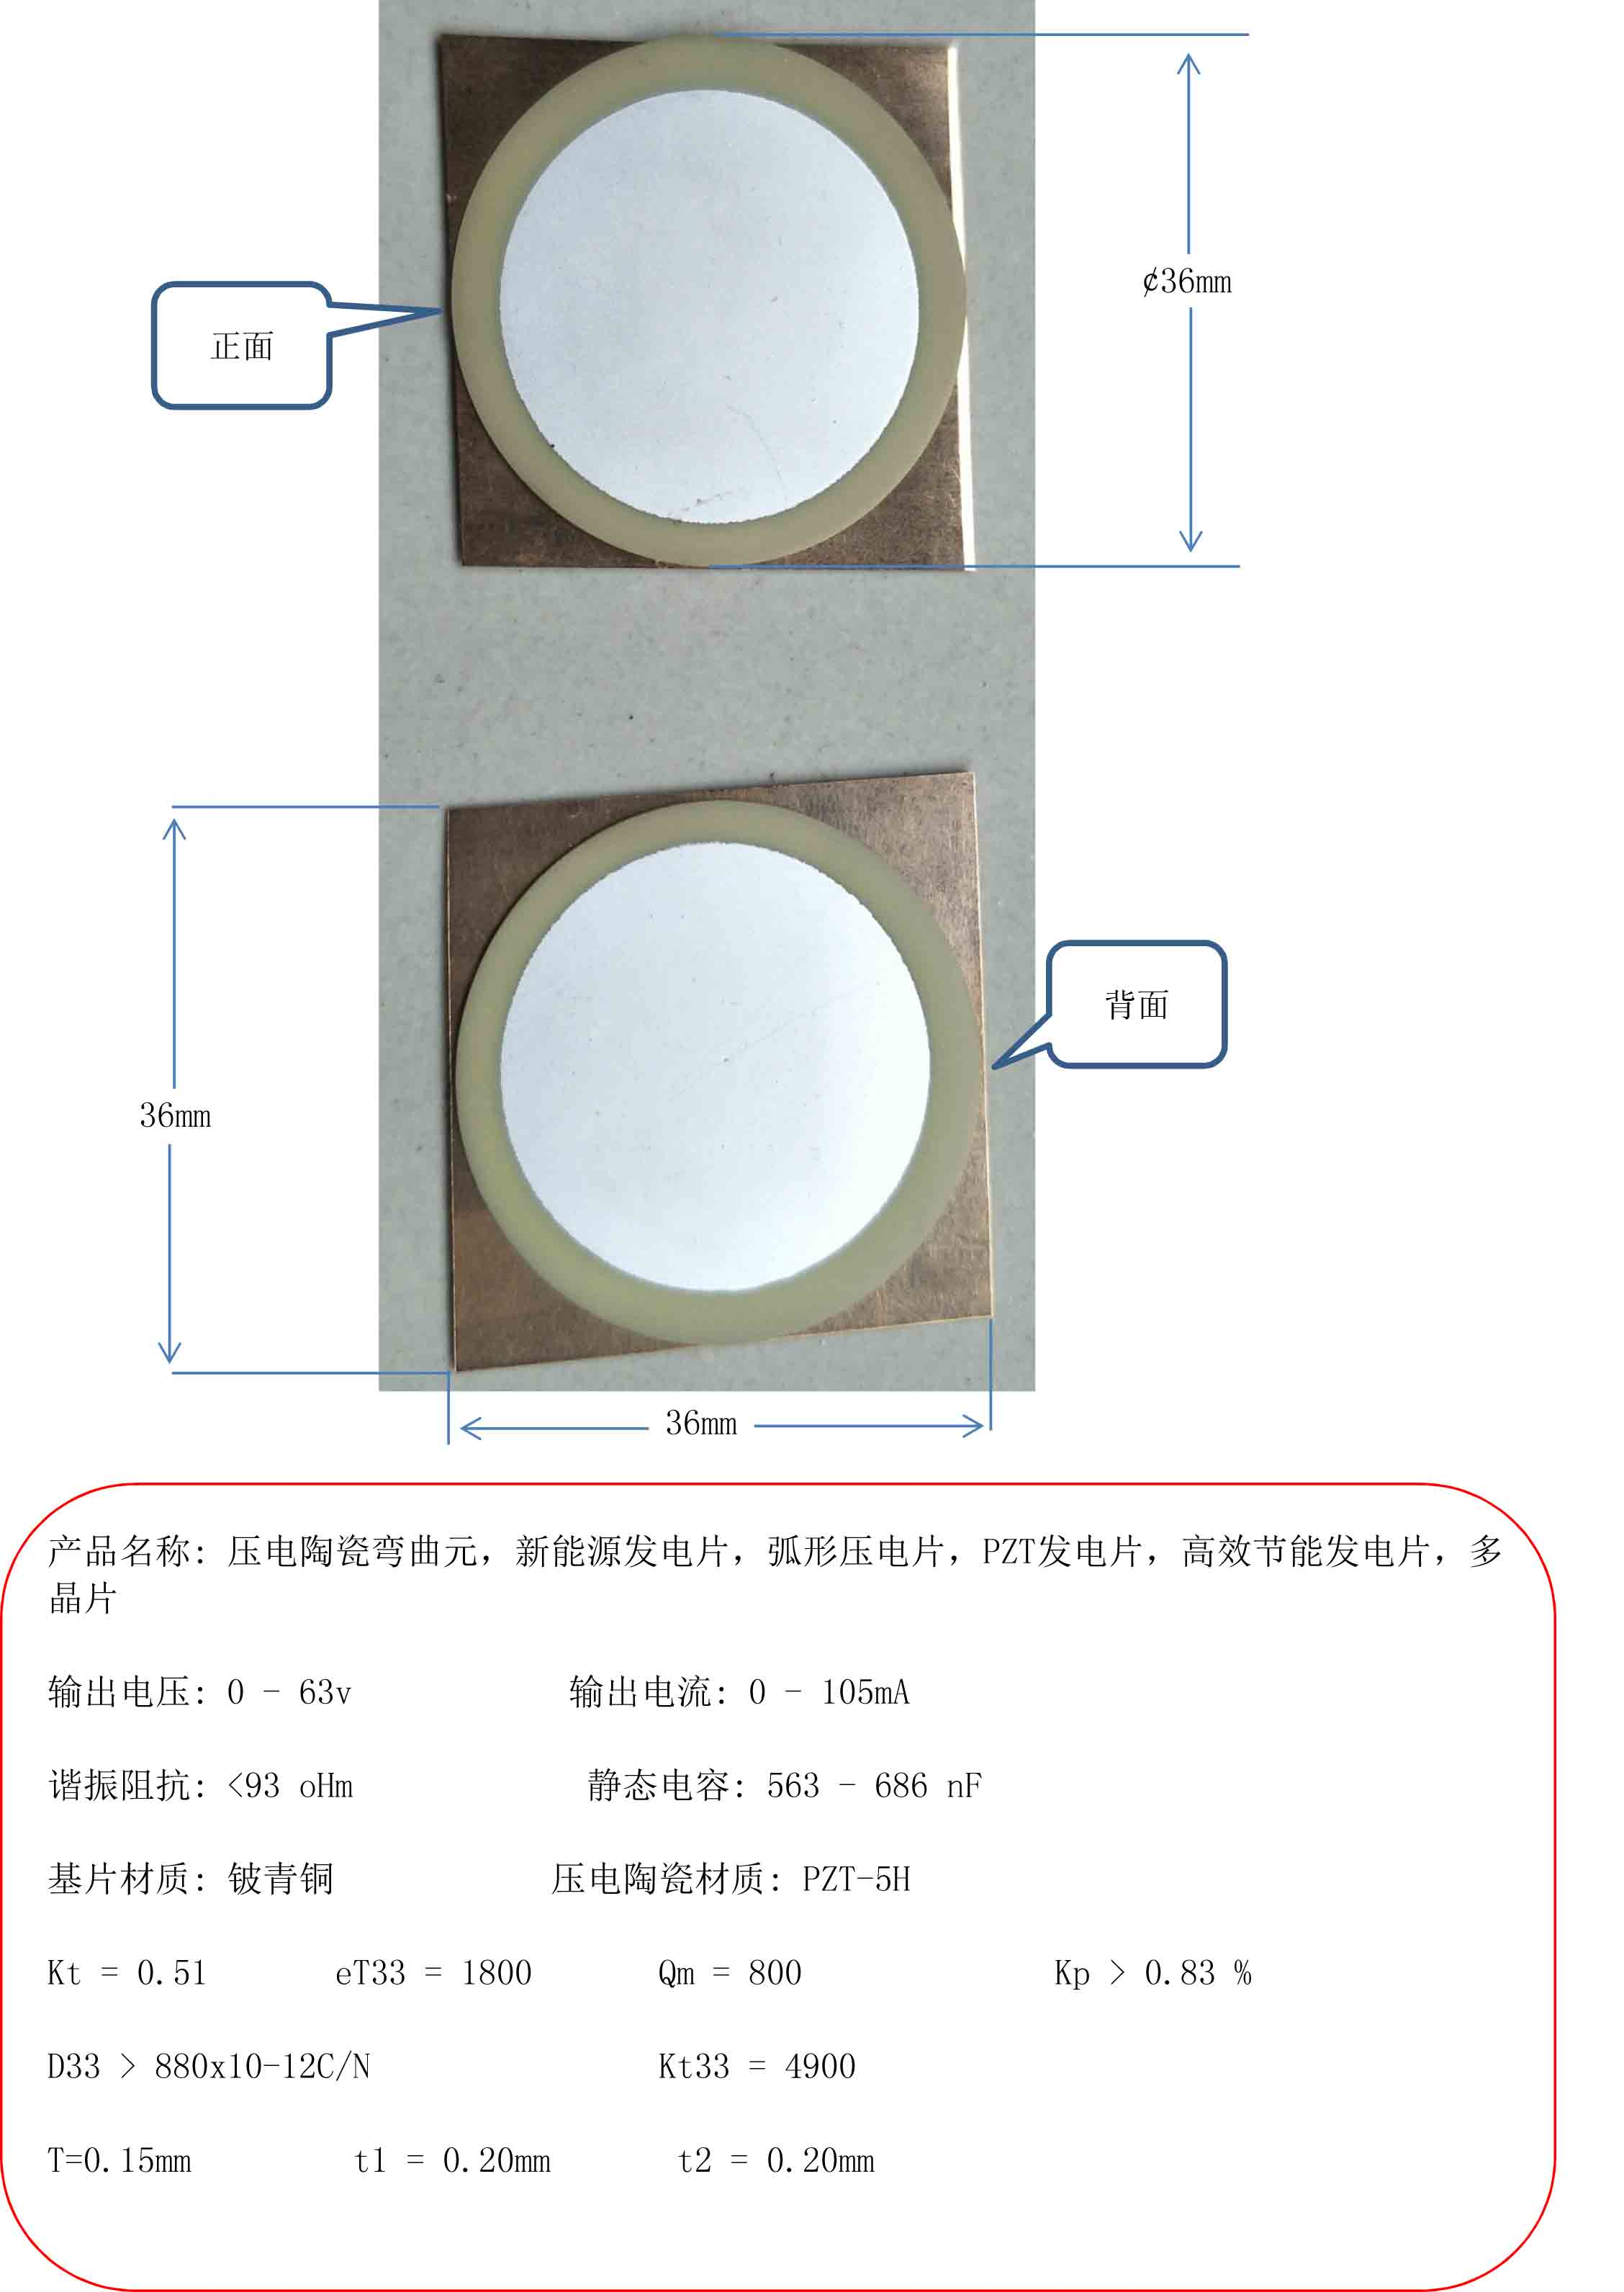 Piezoelectric ceramic bending element, new energy power generation, 36*36mm arc piezoelectric plate, PZT power generation 21mm piezoelectric ceramic power generation new energy power generation bimorph new material pzt ceramic power generation